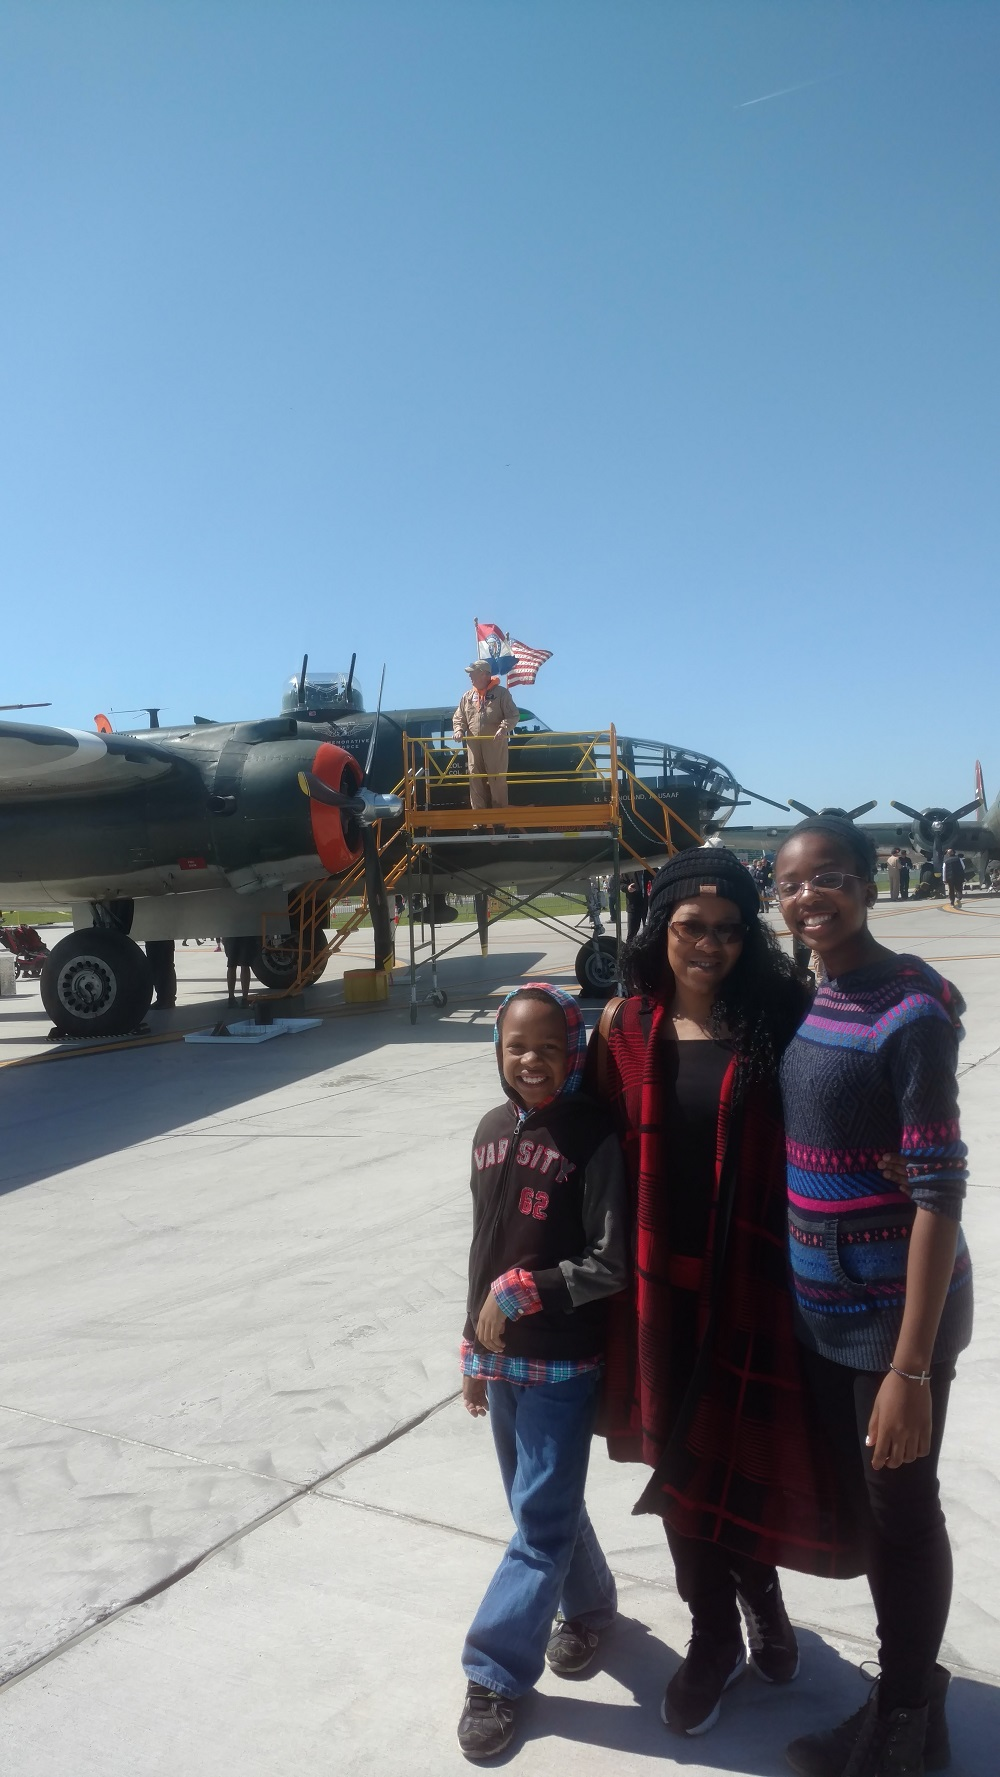 Family Day Out: Spirit of St. Louis Air Show & STEM Expo